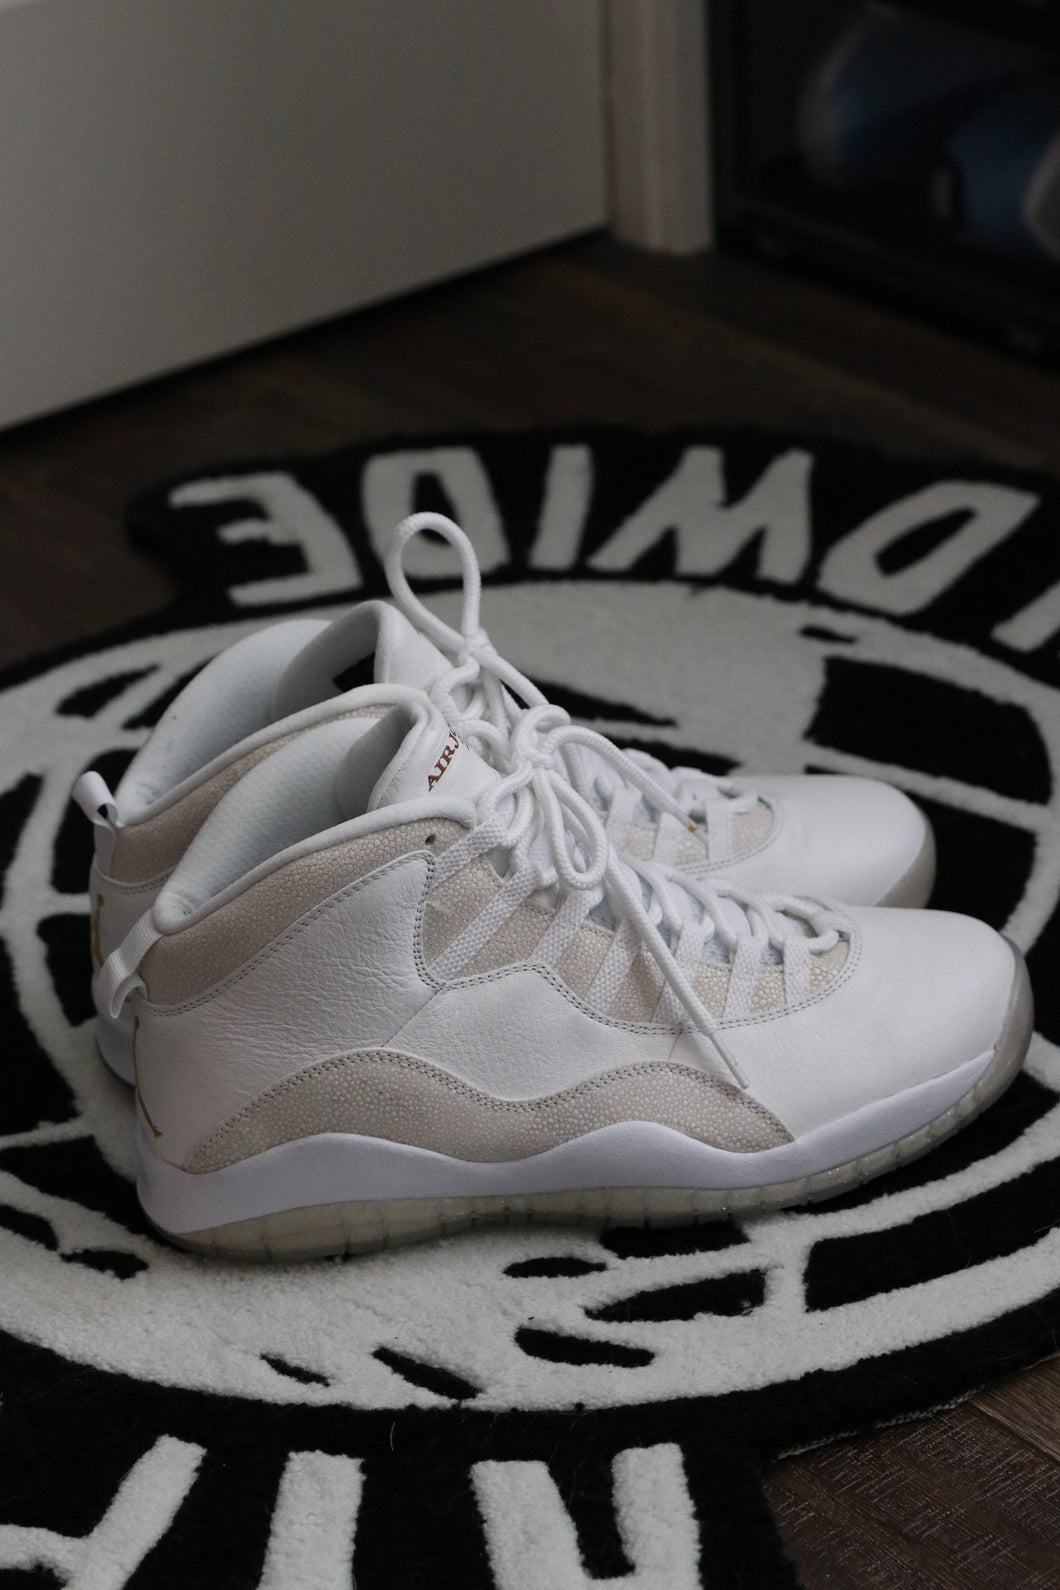 OVO x Air Jordan 10 White | Worn | Size 12